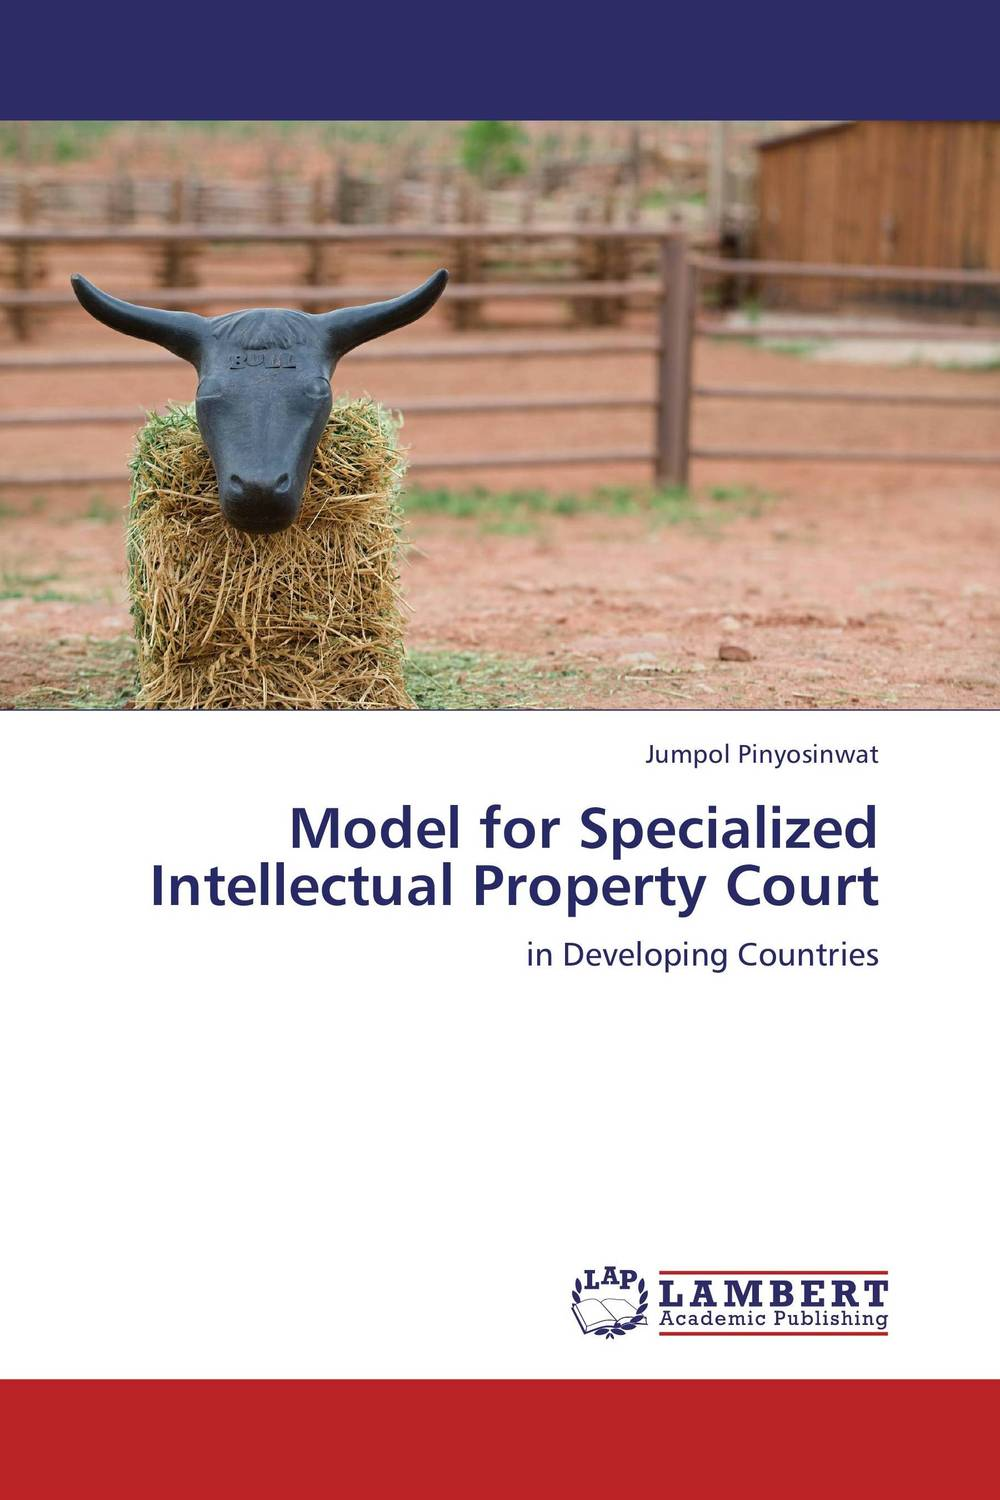 Model for Specialized Intellectual Property Court